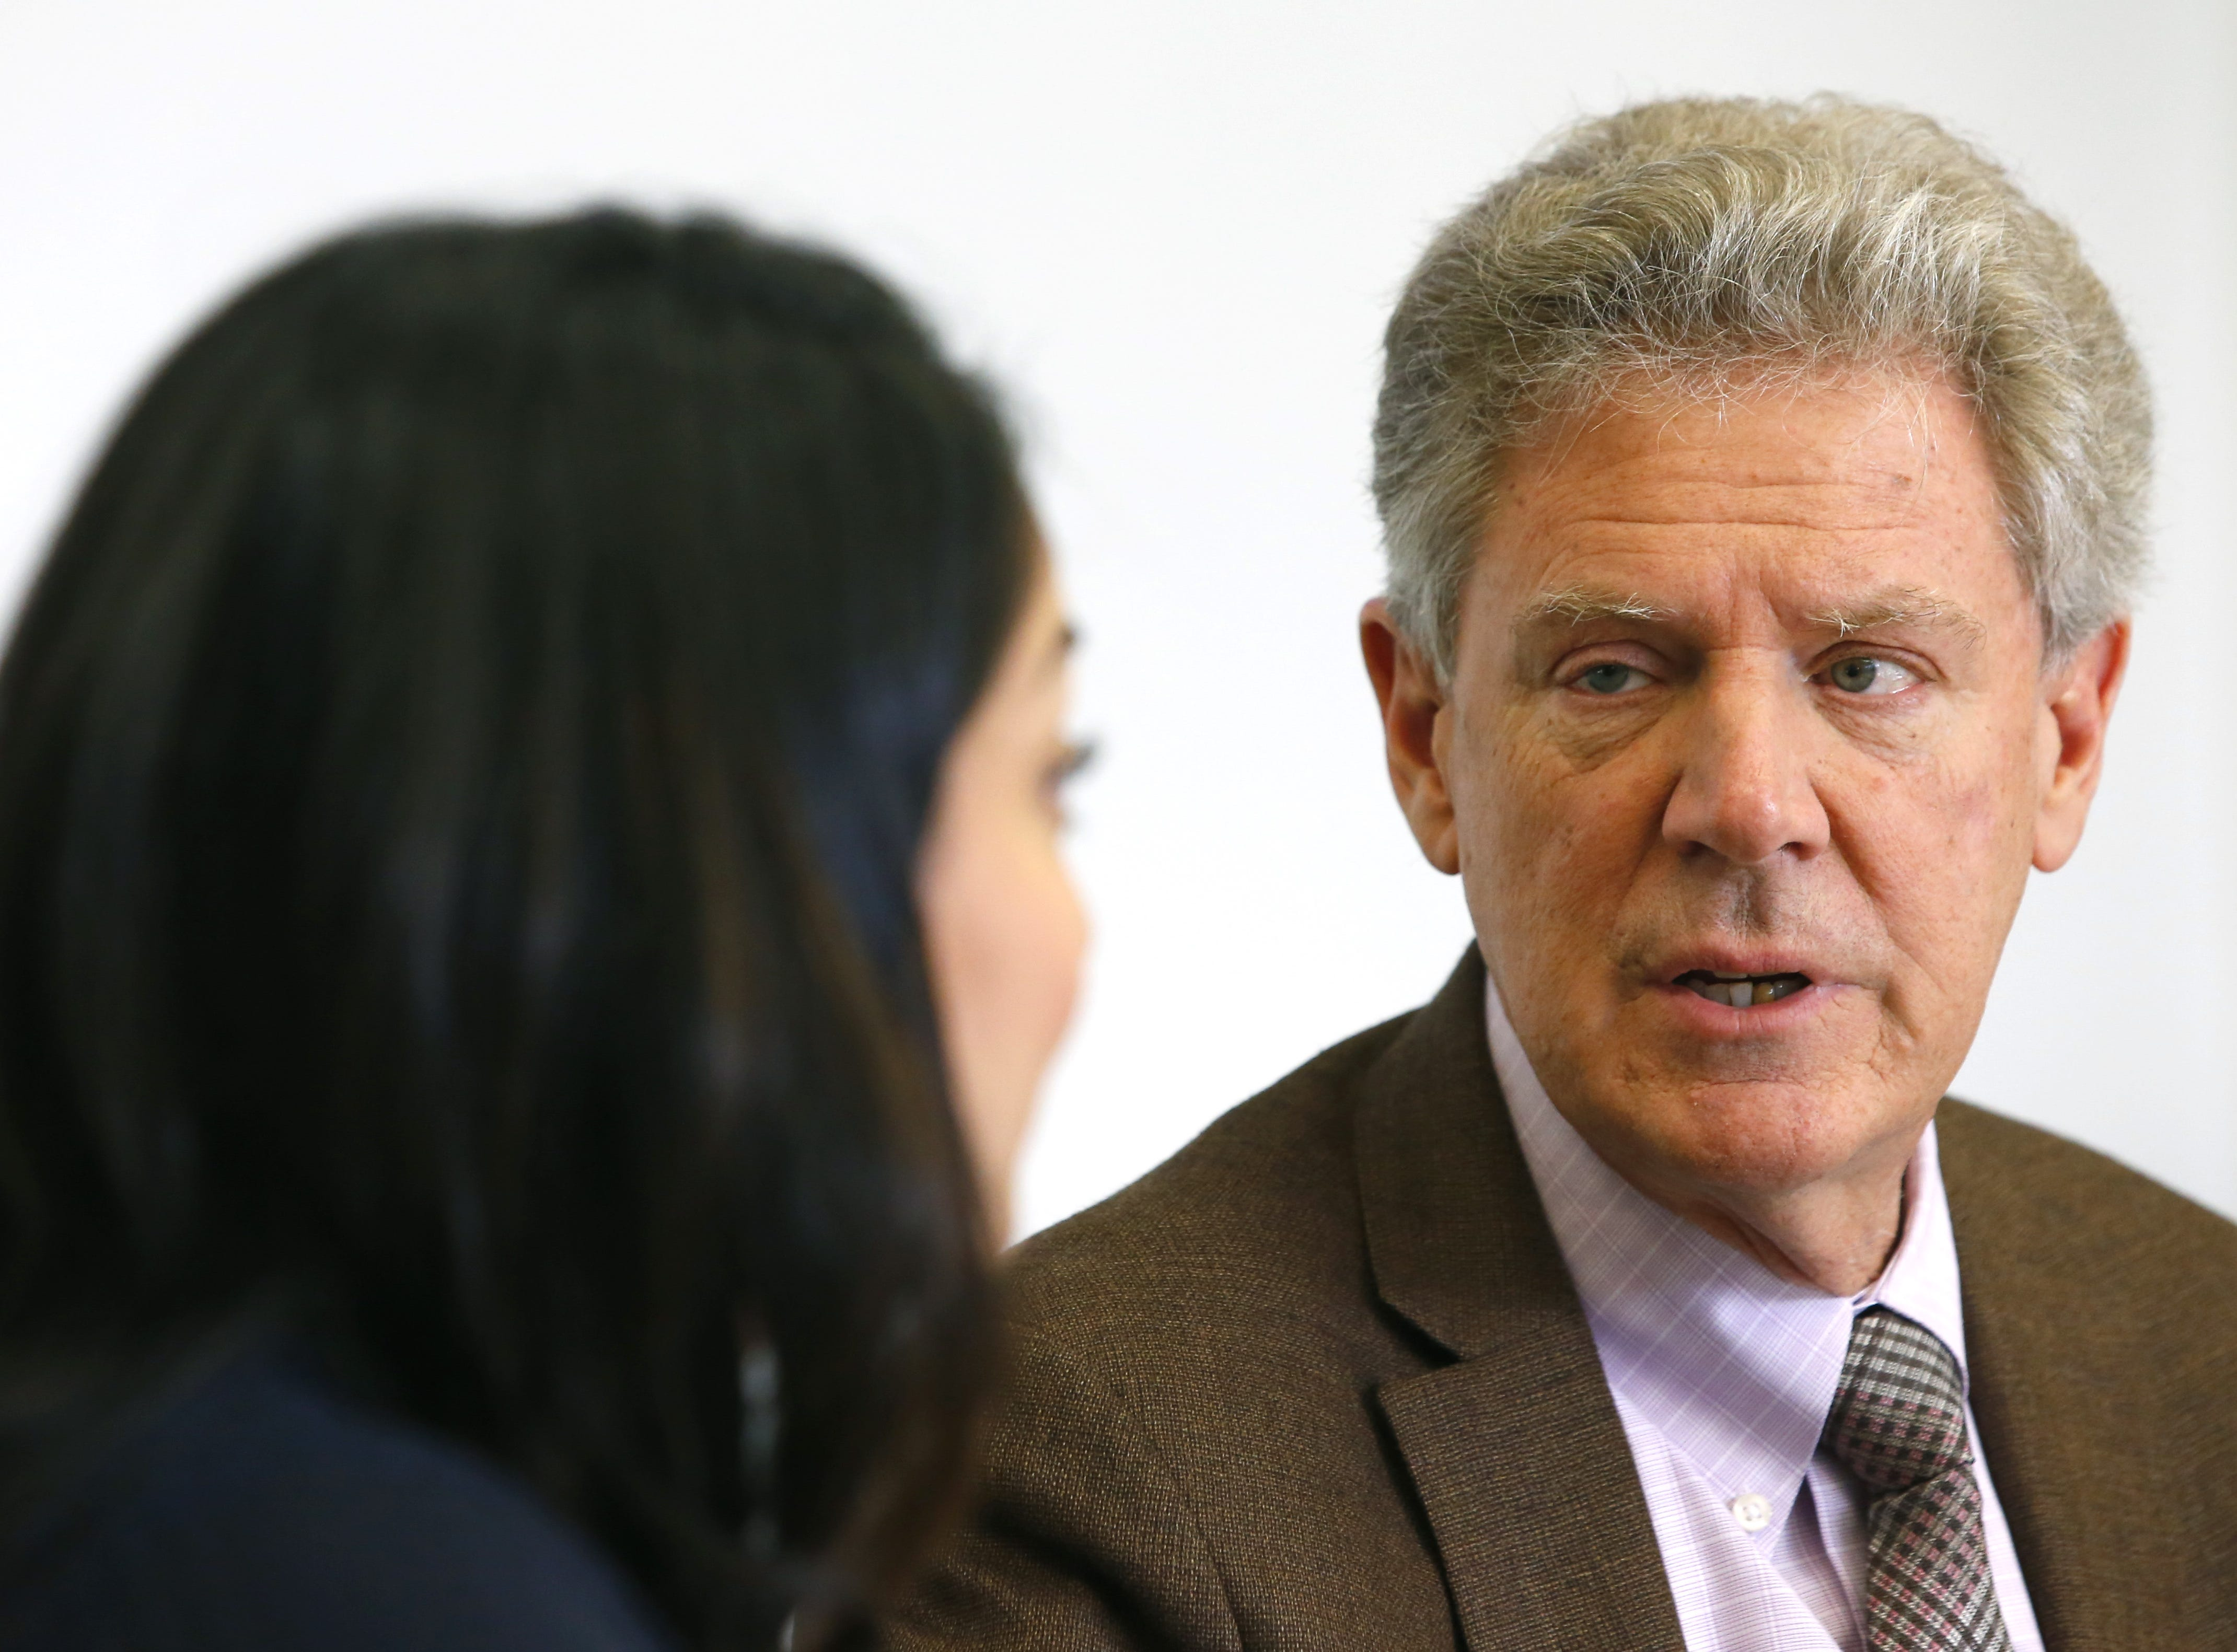 Ranking member of the House Energy and Commerce Committee, Rep. Frank Pallone, talks to hospital administrators during visit to Monmouth Medical Center in Long Branch, NJ.  Monday, December 3, 2018.